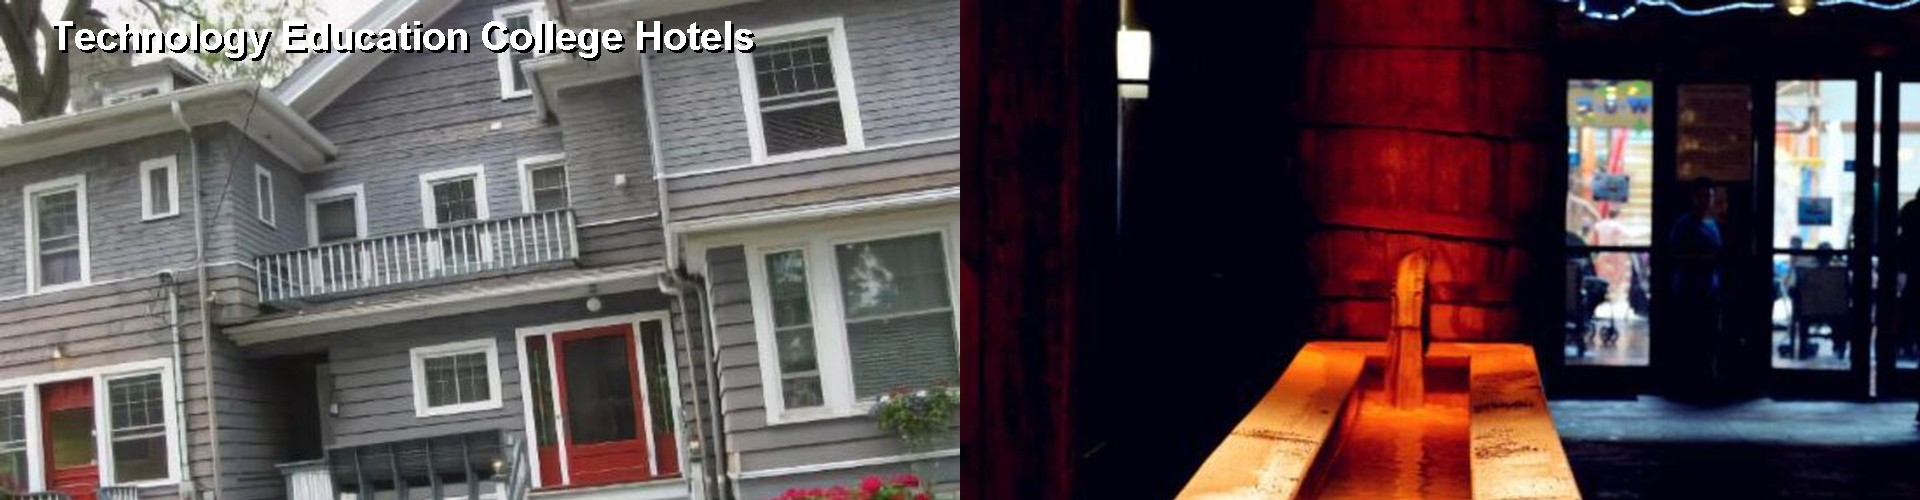 5 Best Hotels near Technology Education College